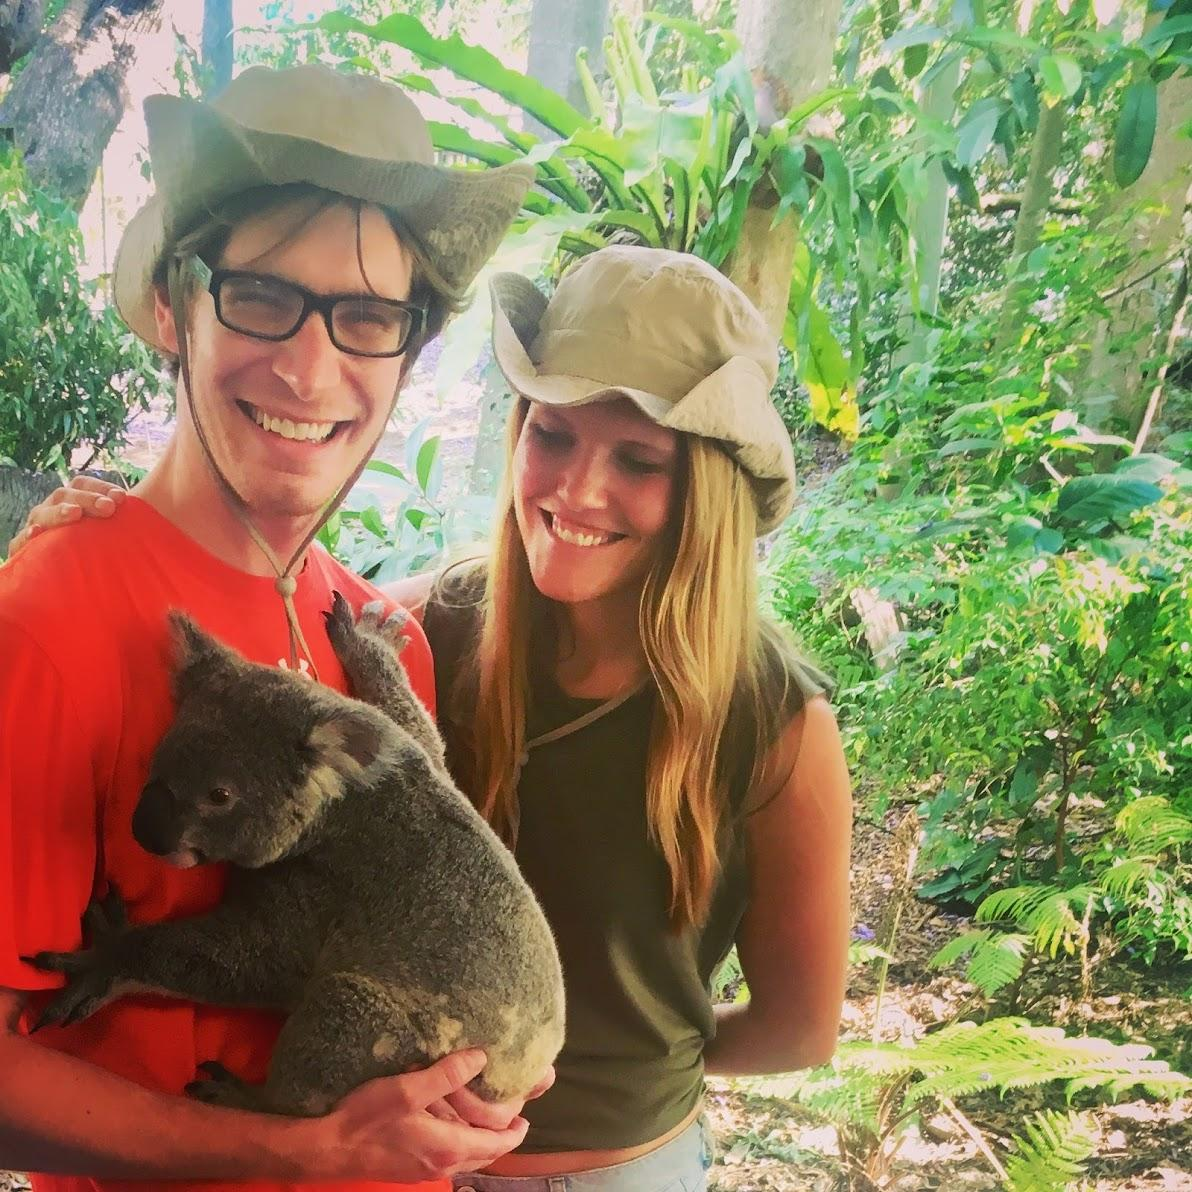 When in Australia! Be grateful there is just one of these... Kristi has 300 pictures with kangaroos and koalas